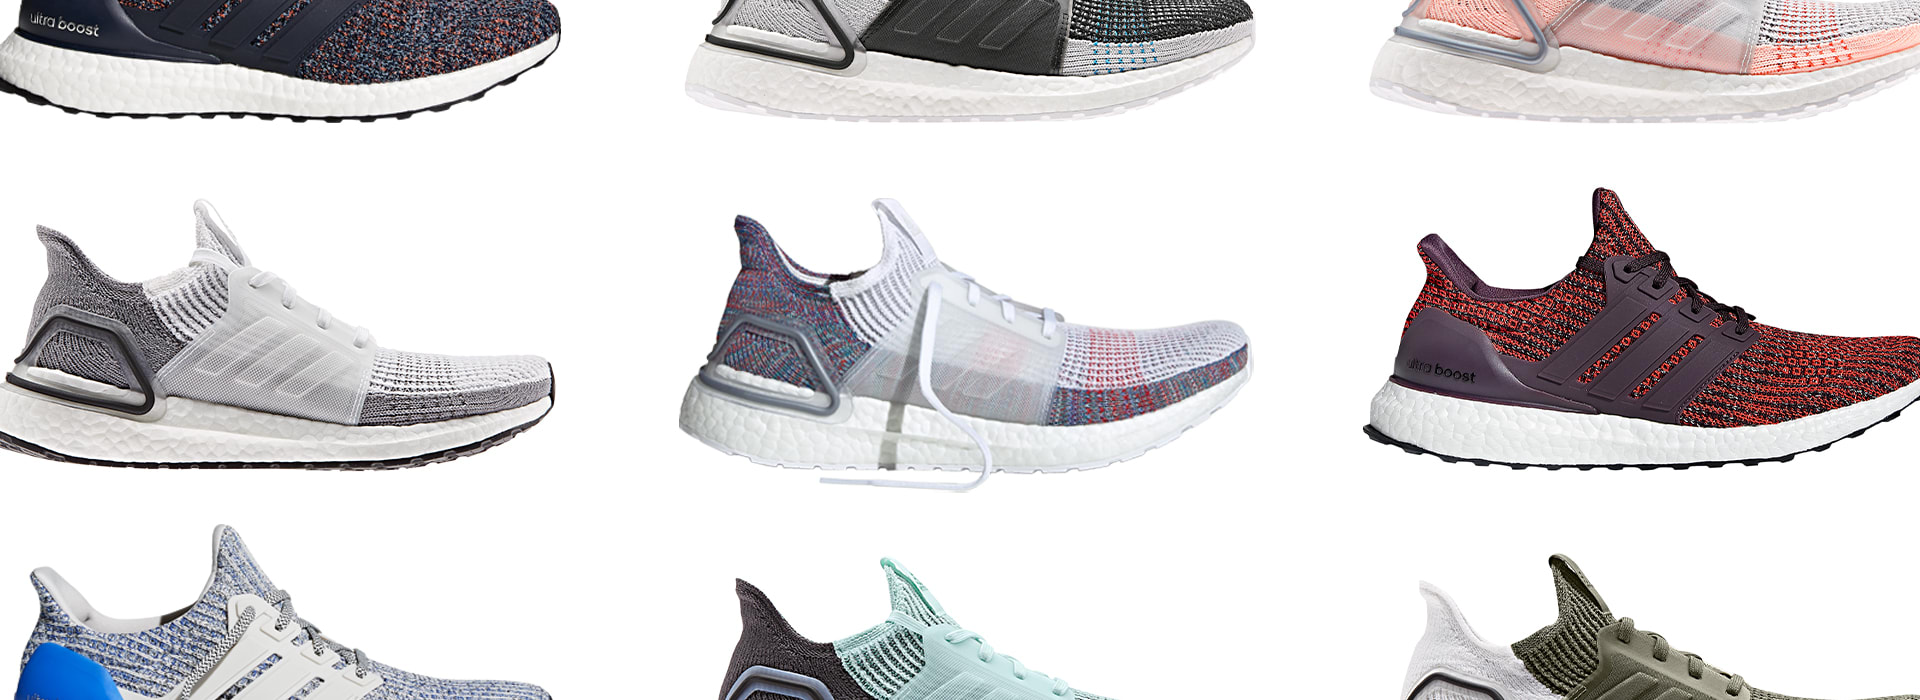 Le seul guide des tailles Ultraboost dont tu as besoin